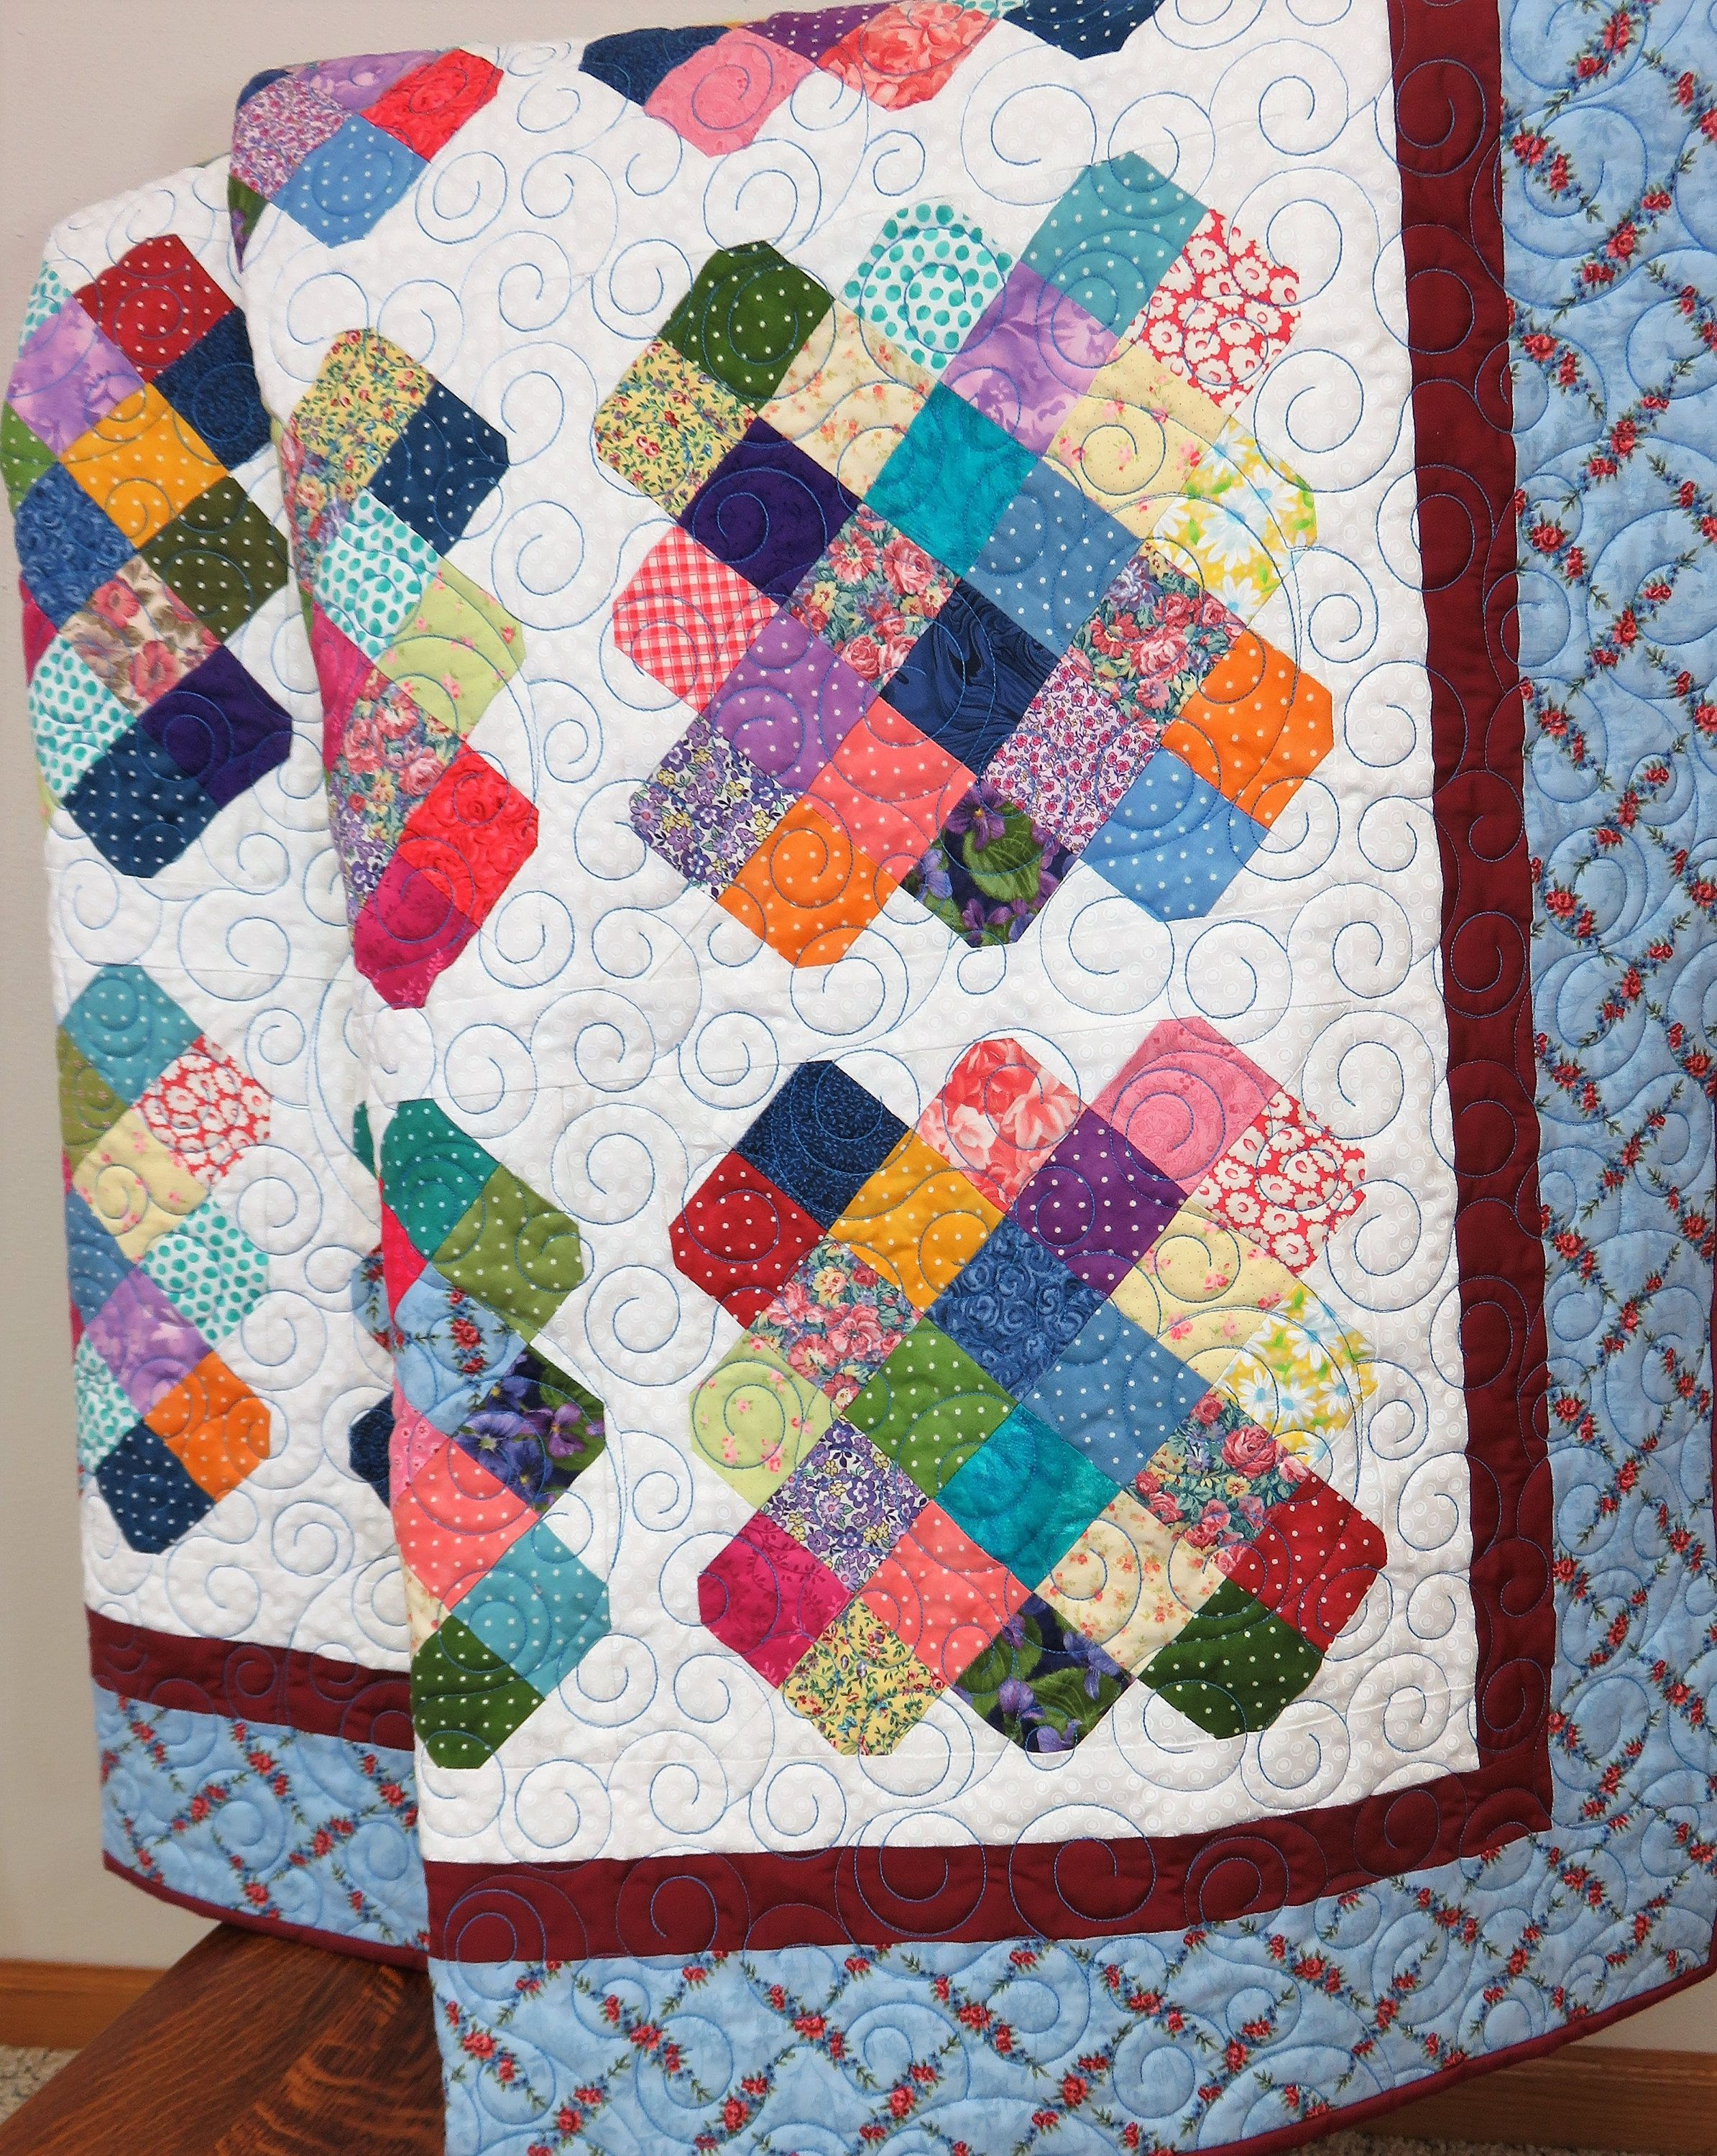 Handmade Quilt For Sale Twin Size Quilt Full Size Coverlet Double Quilt Queen Coverlet Large Blanket Throw Quilt Lap Blanket Floral In 2020 Handmade Quilts For Sale Handmade Quilts Quilts